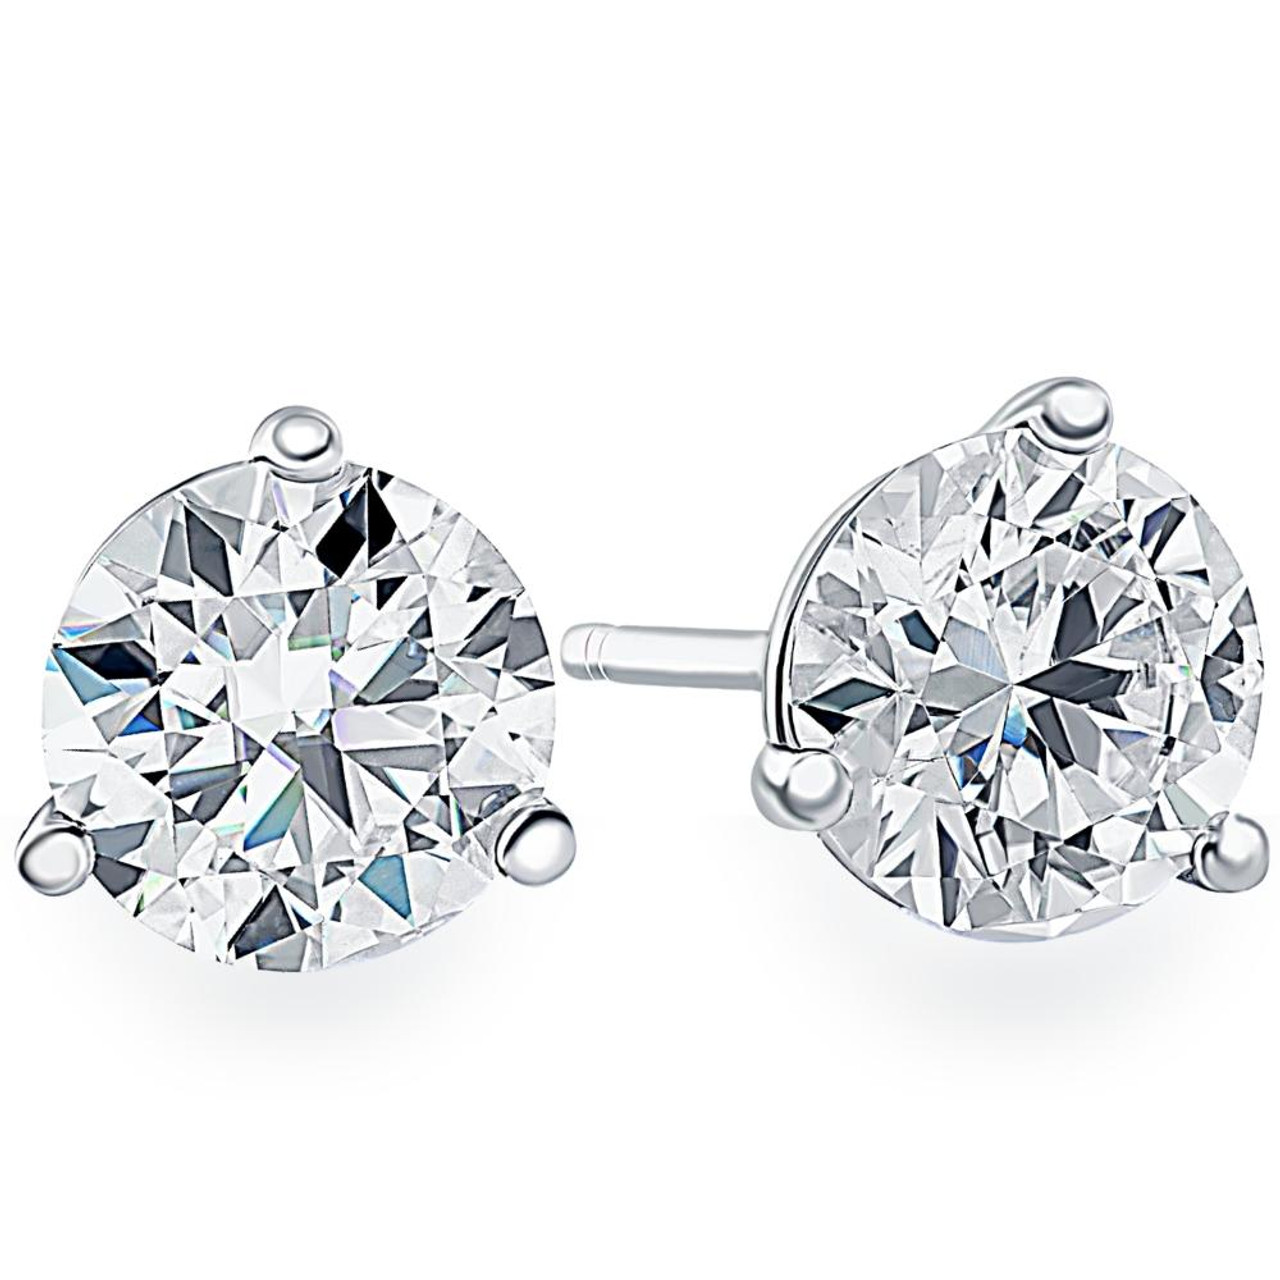 aeb41360b 1/2ct Martini Diamond Studs 14K White Gold (F, VS). ER1250-.50VS. 1 Review  https://d3d71ba2asa5oz.cloudfront.net/53000589/images/er3150-